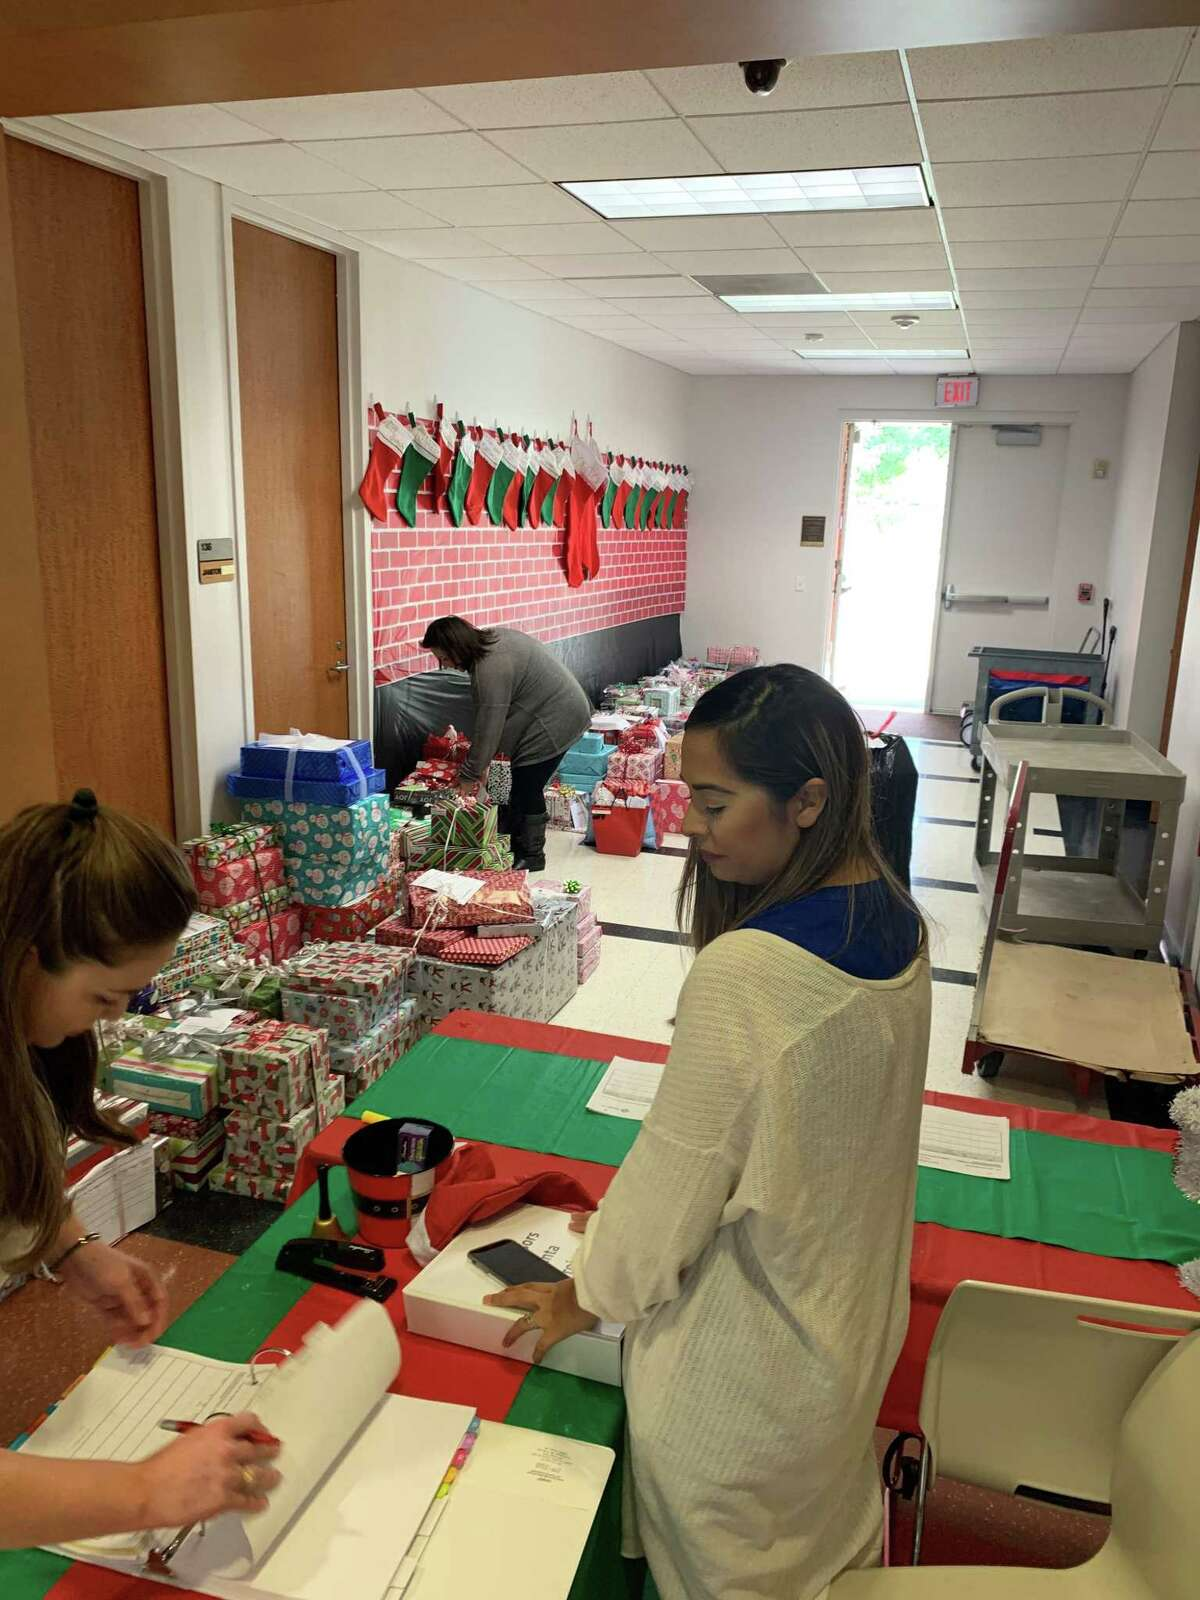 Boys & Girls Clubs of Greater Houston's Santa Project provides opportunities for individuals and companies to sponsor Club members from families who are most in need during the holiday season.